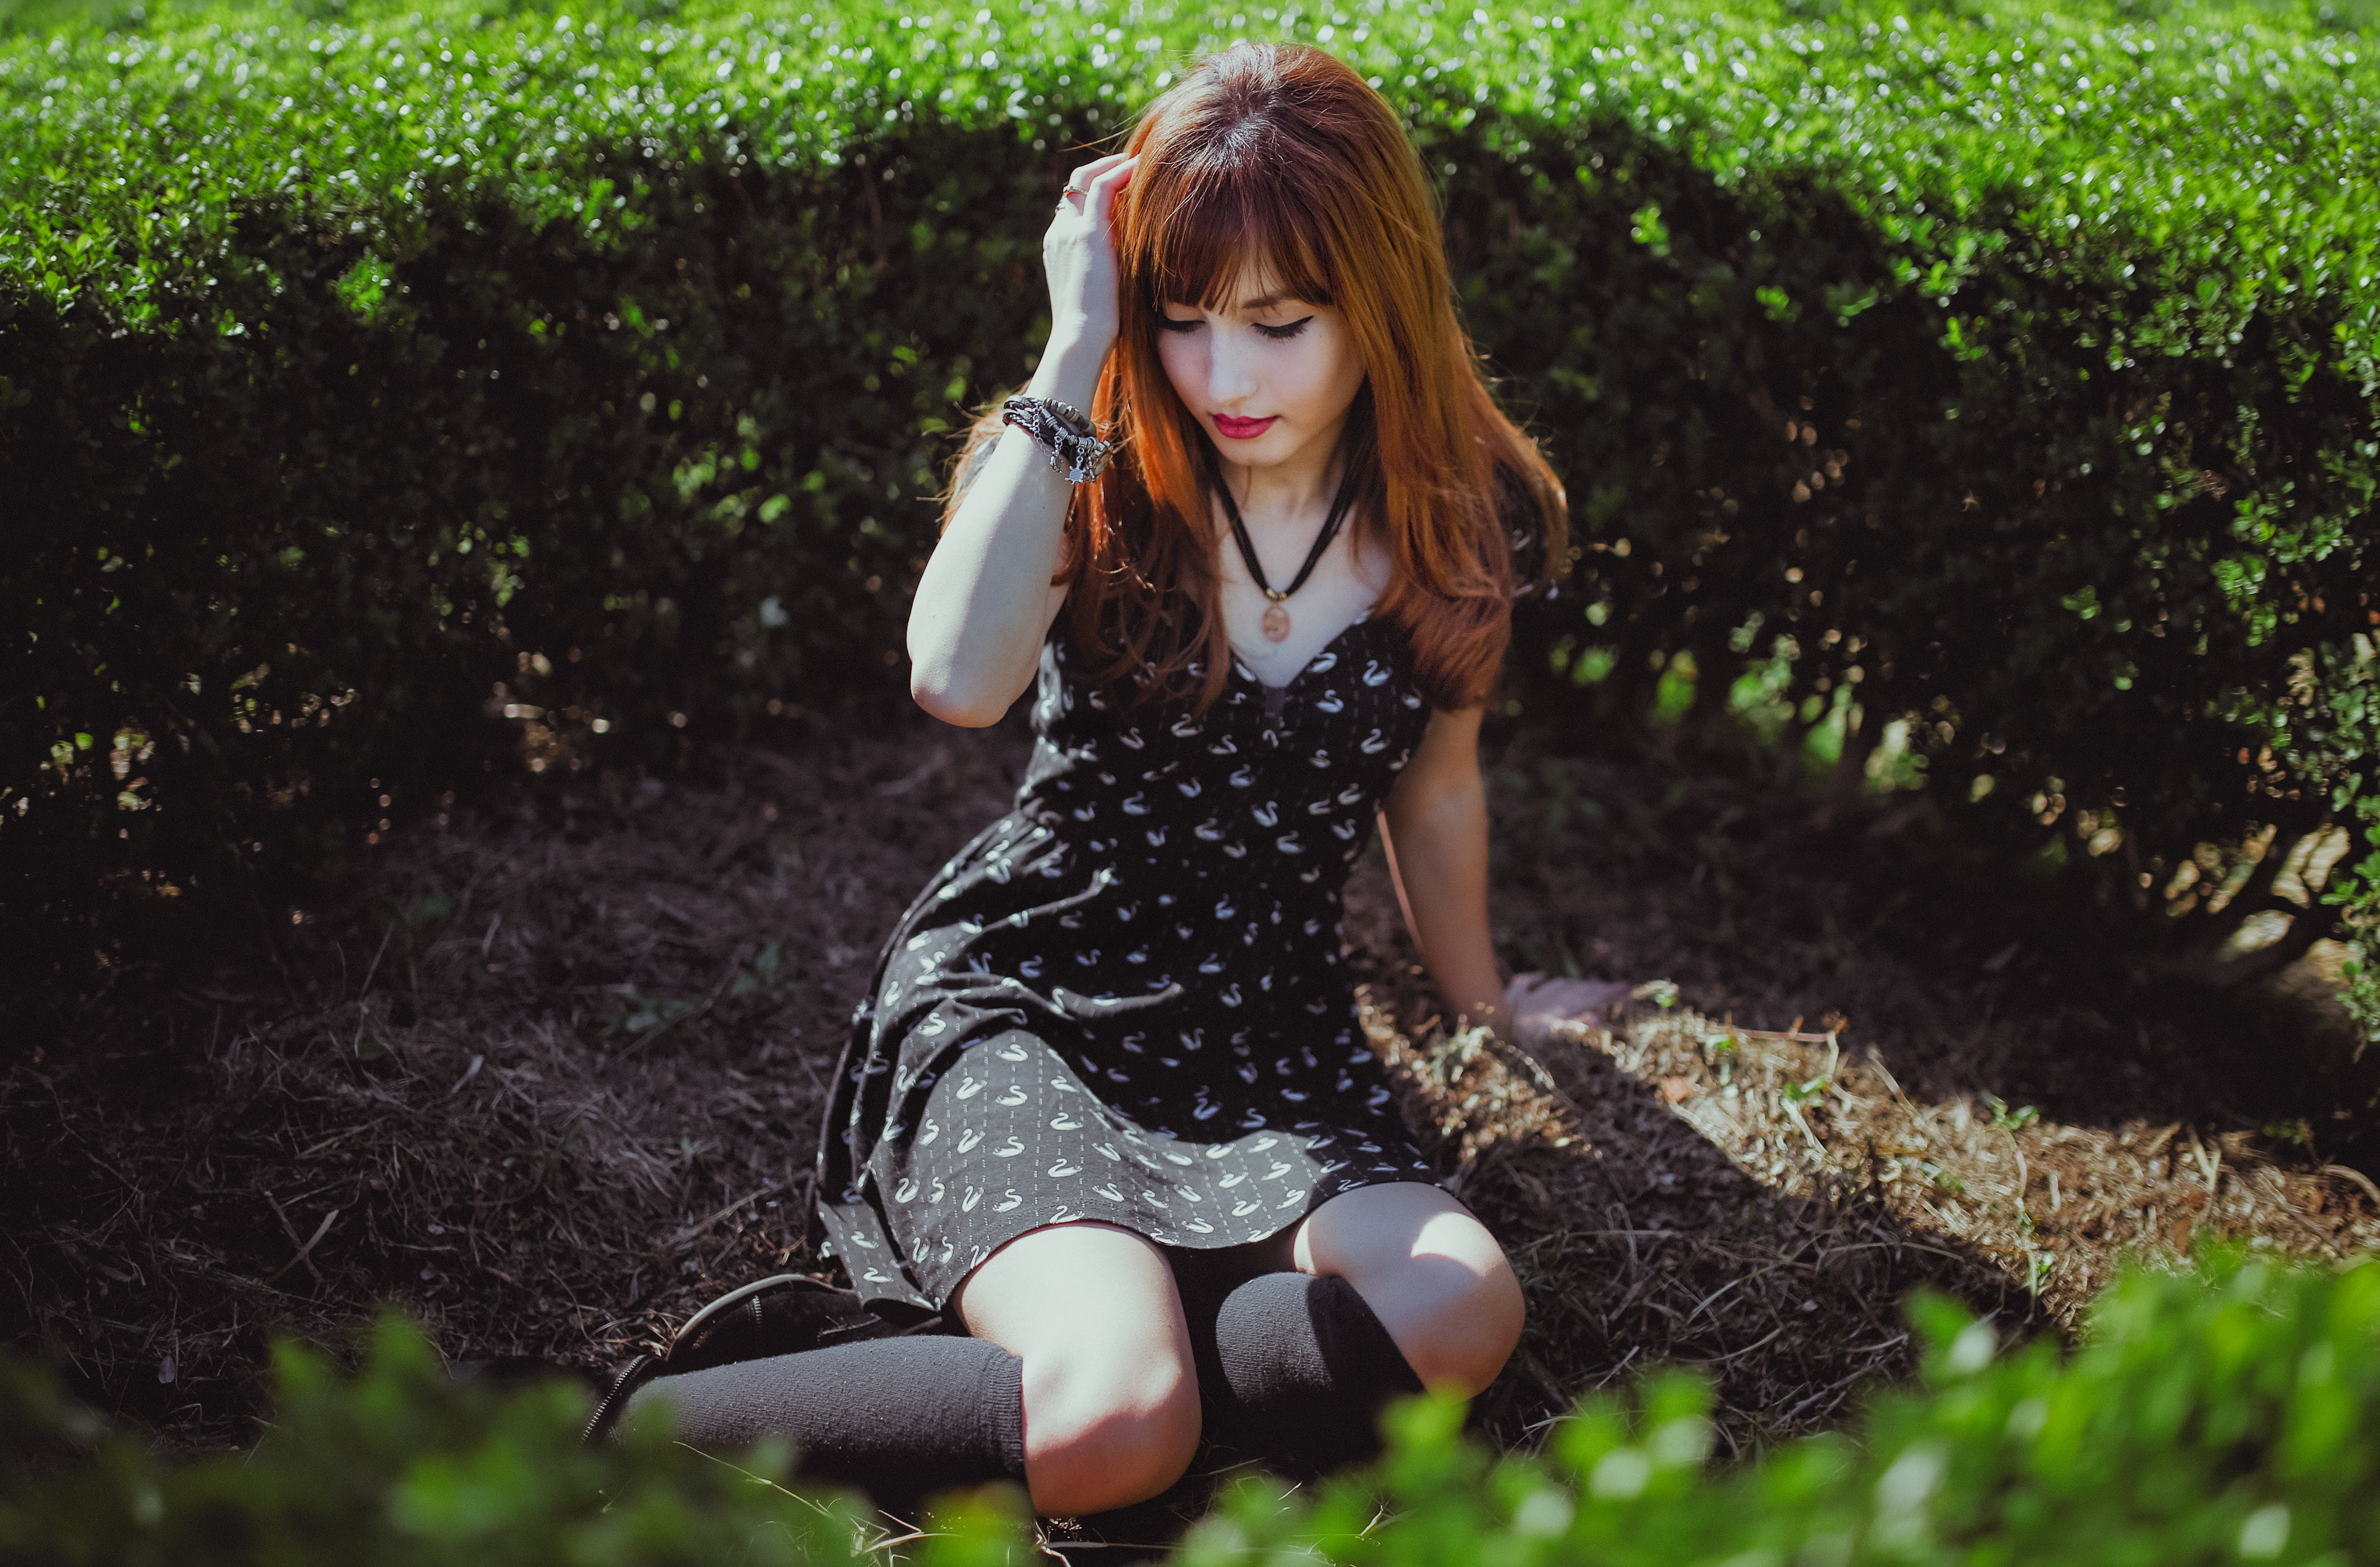 Woman Sitting on the Ground Beside Bushes